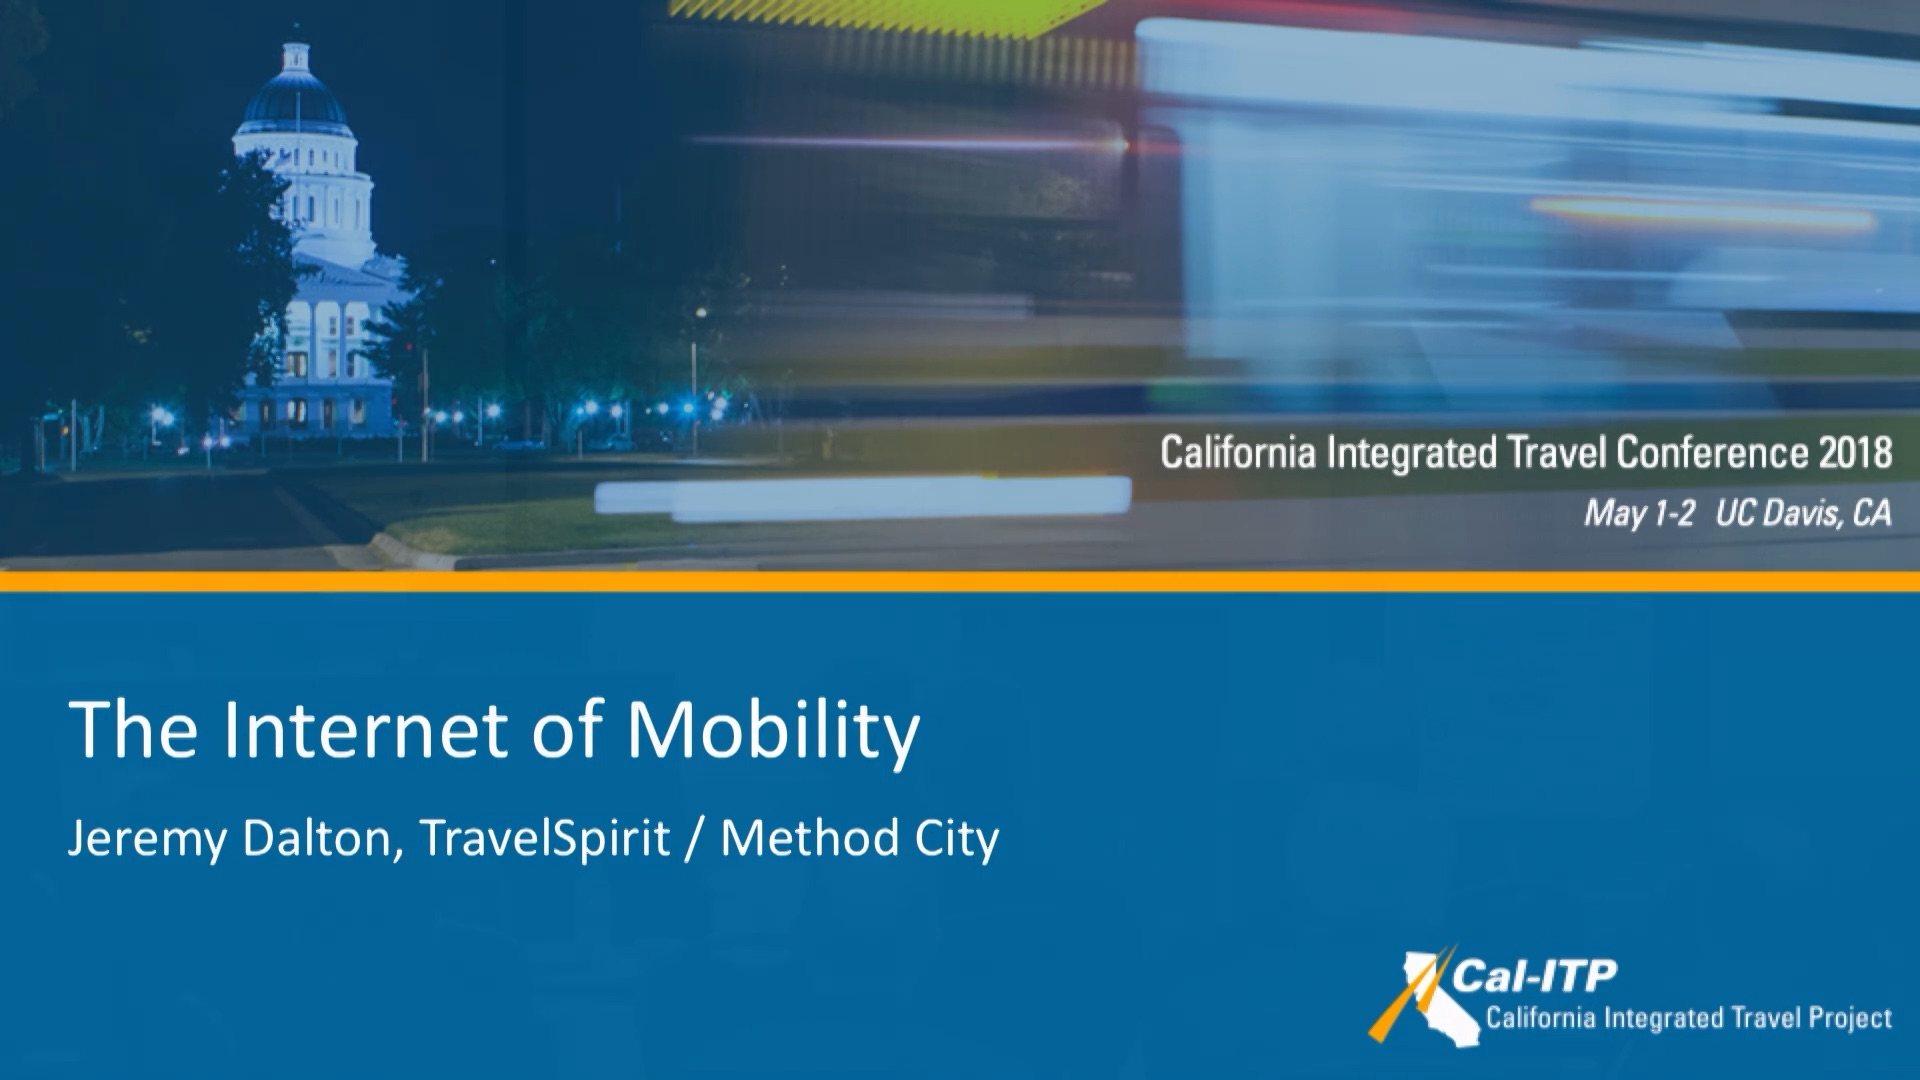 29. The Internet of Mobility